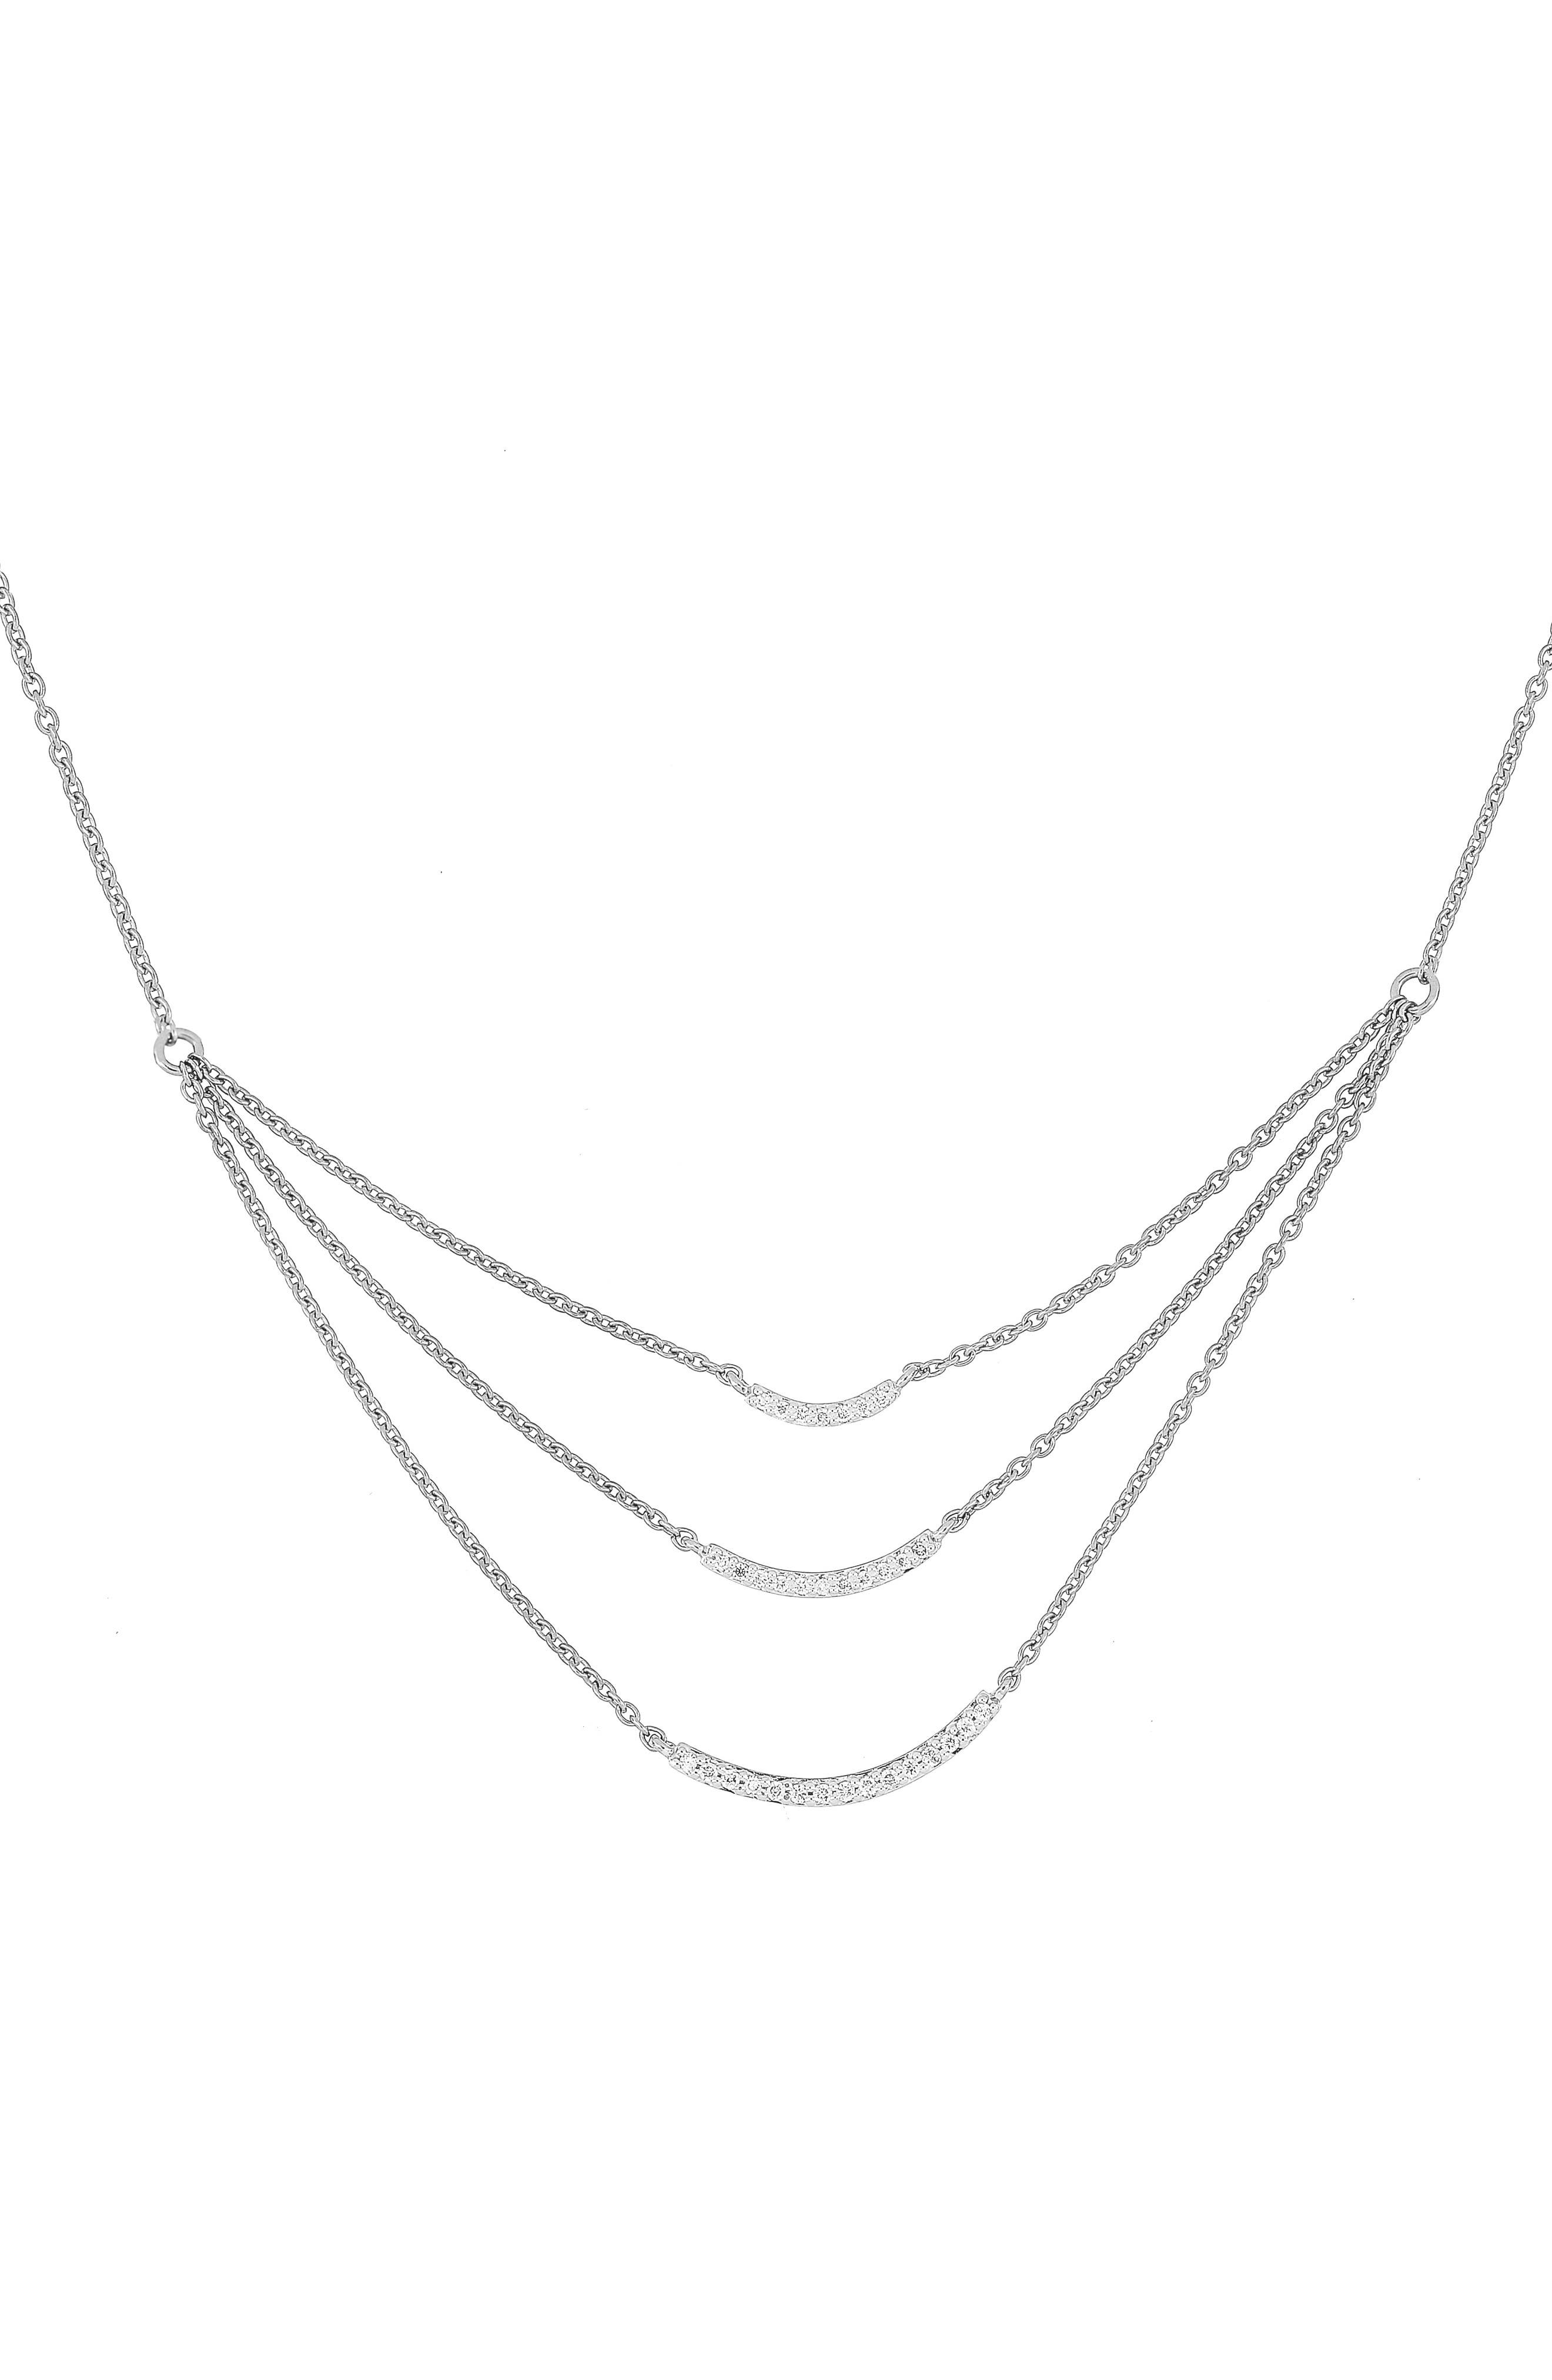 Diamond Layered Necklace,                             Main thumbnail 1, color,                             White Gold